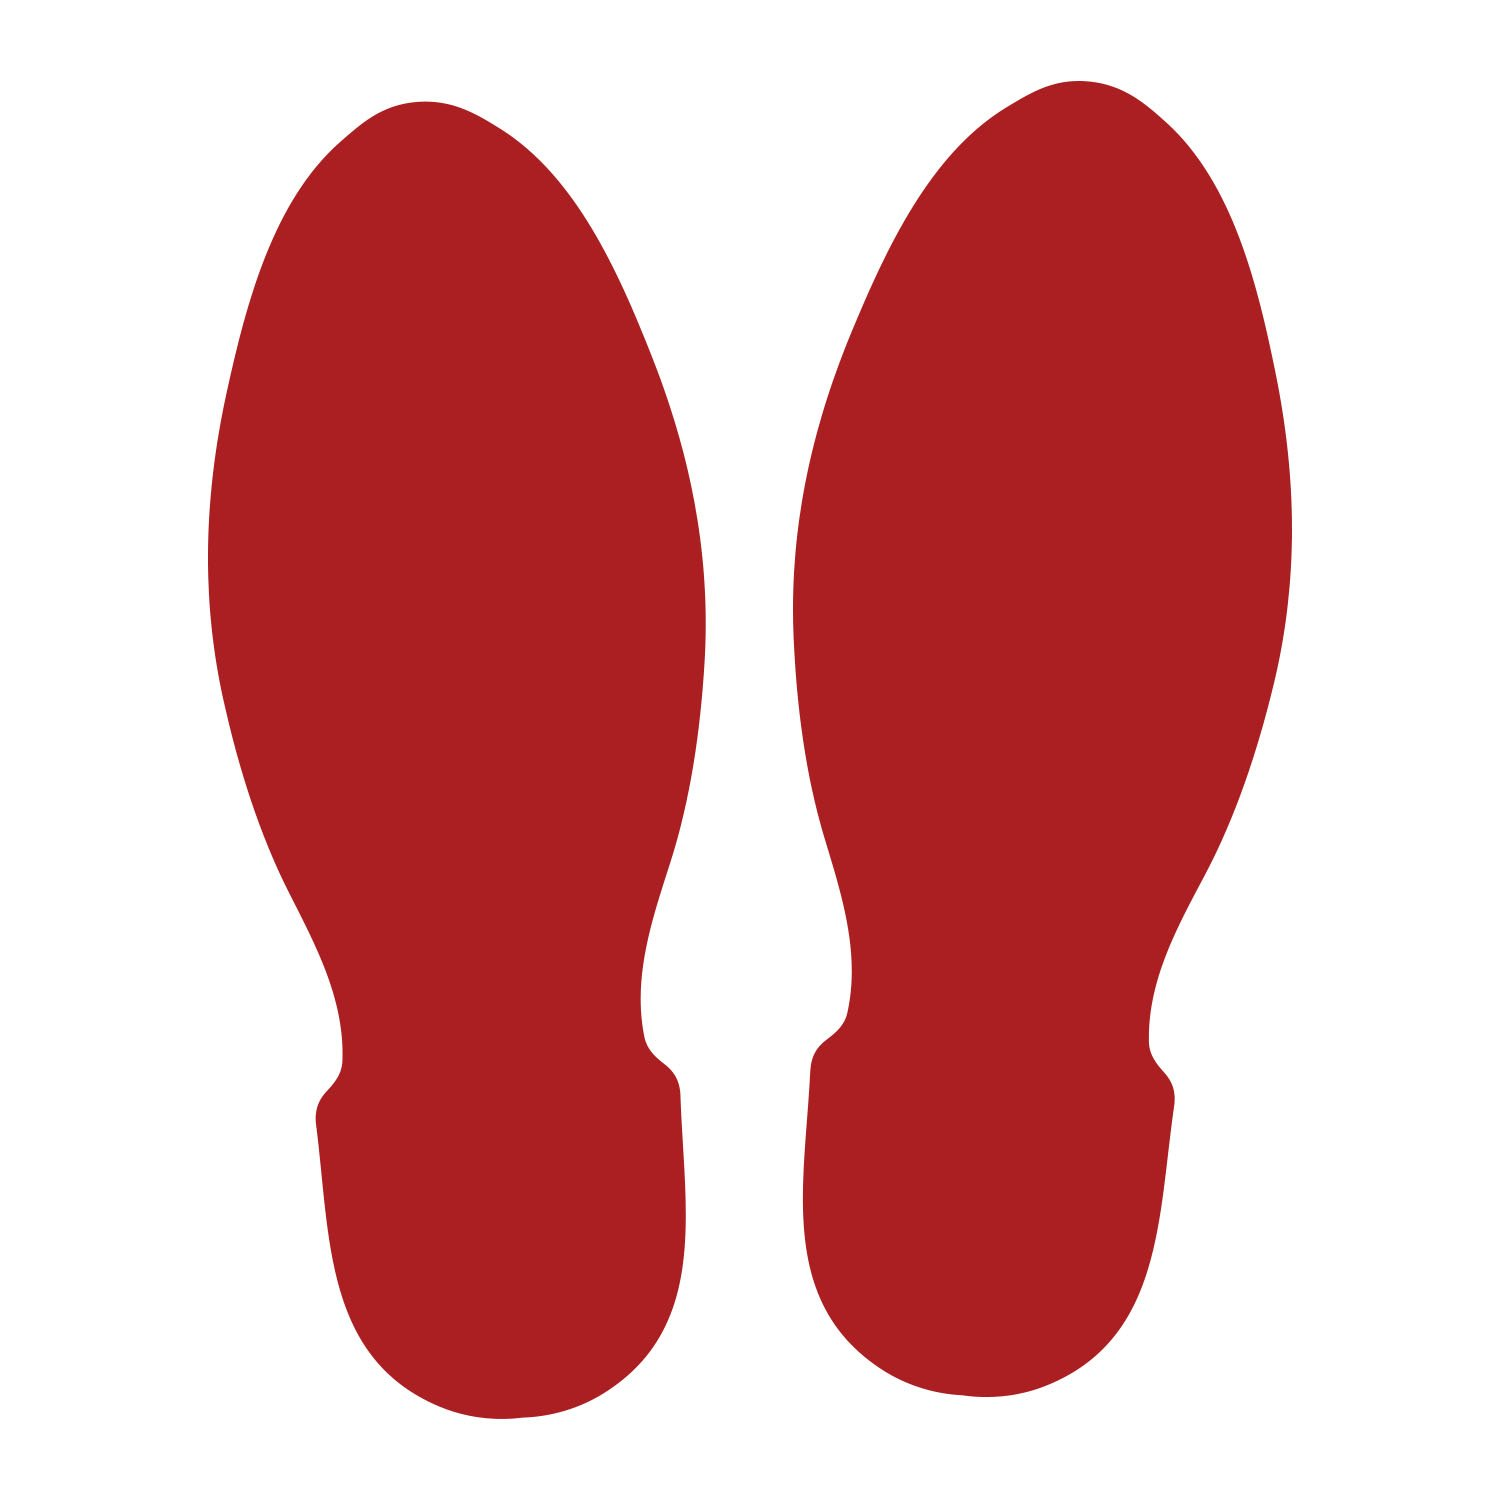 LiteMark 9 inch Red Unifoot Footprint Decal Stickers for Floors and Walls - Pack of 12